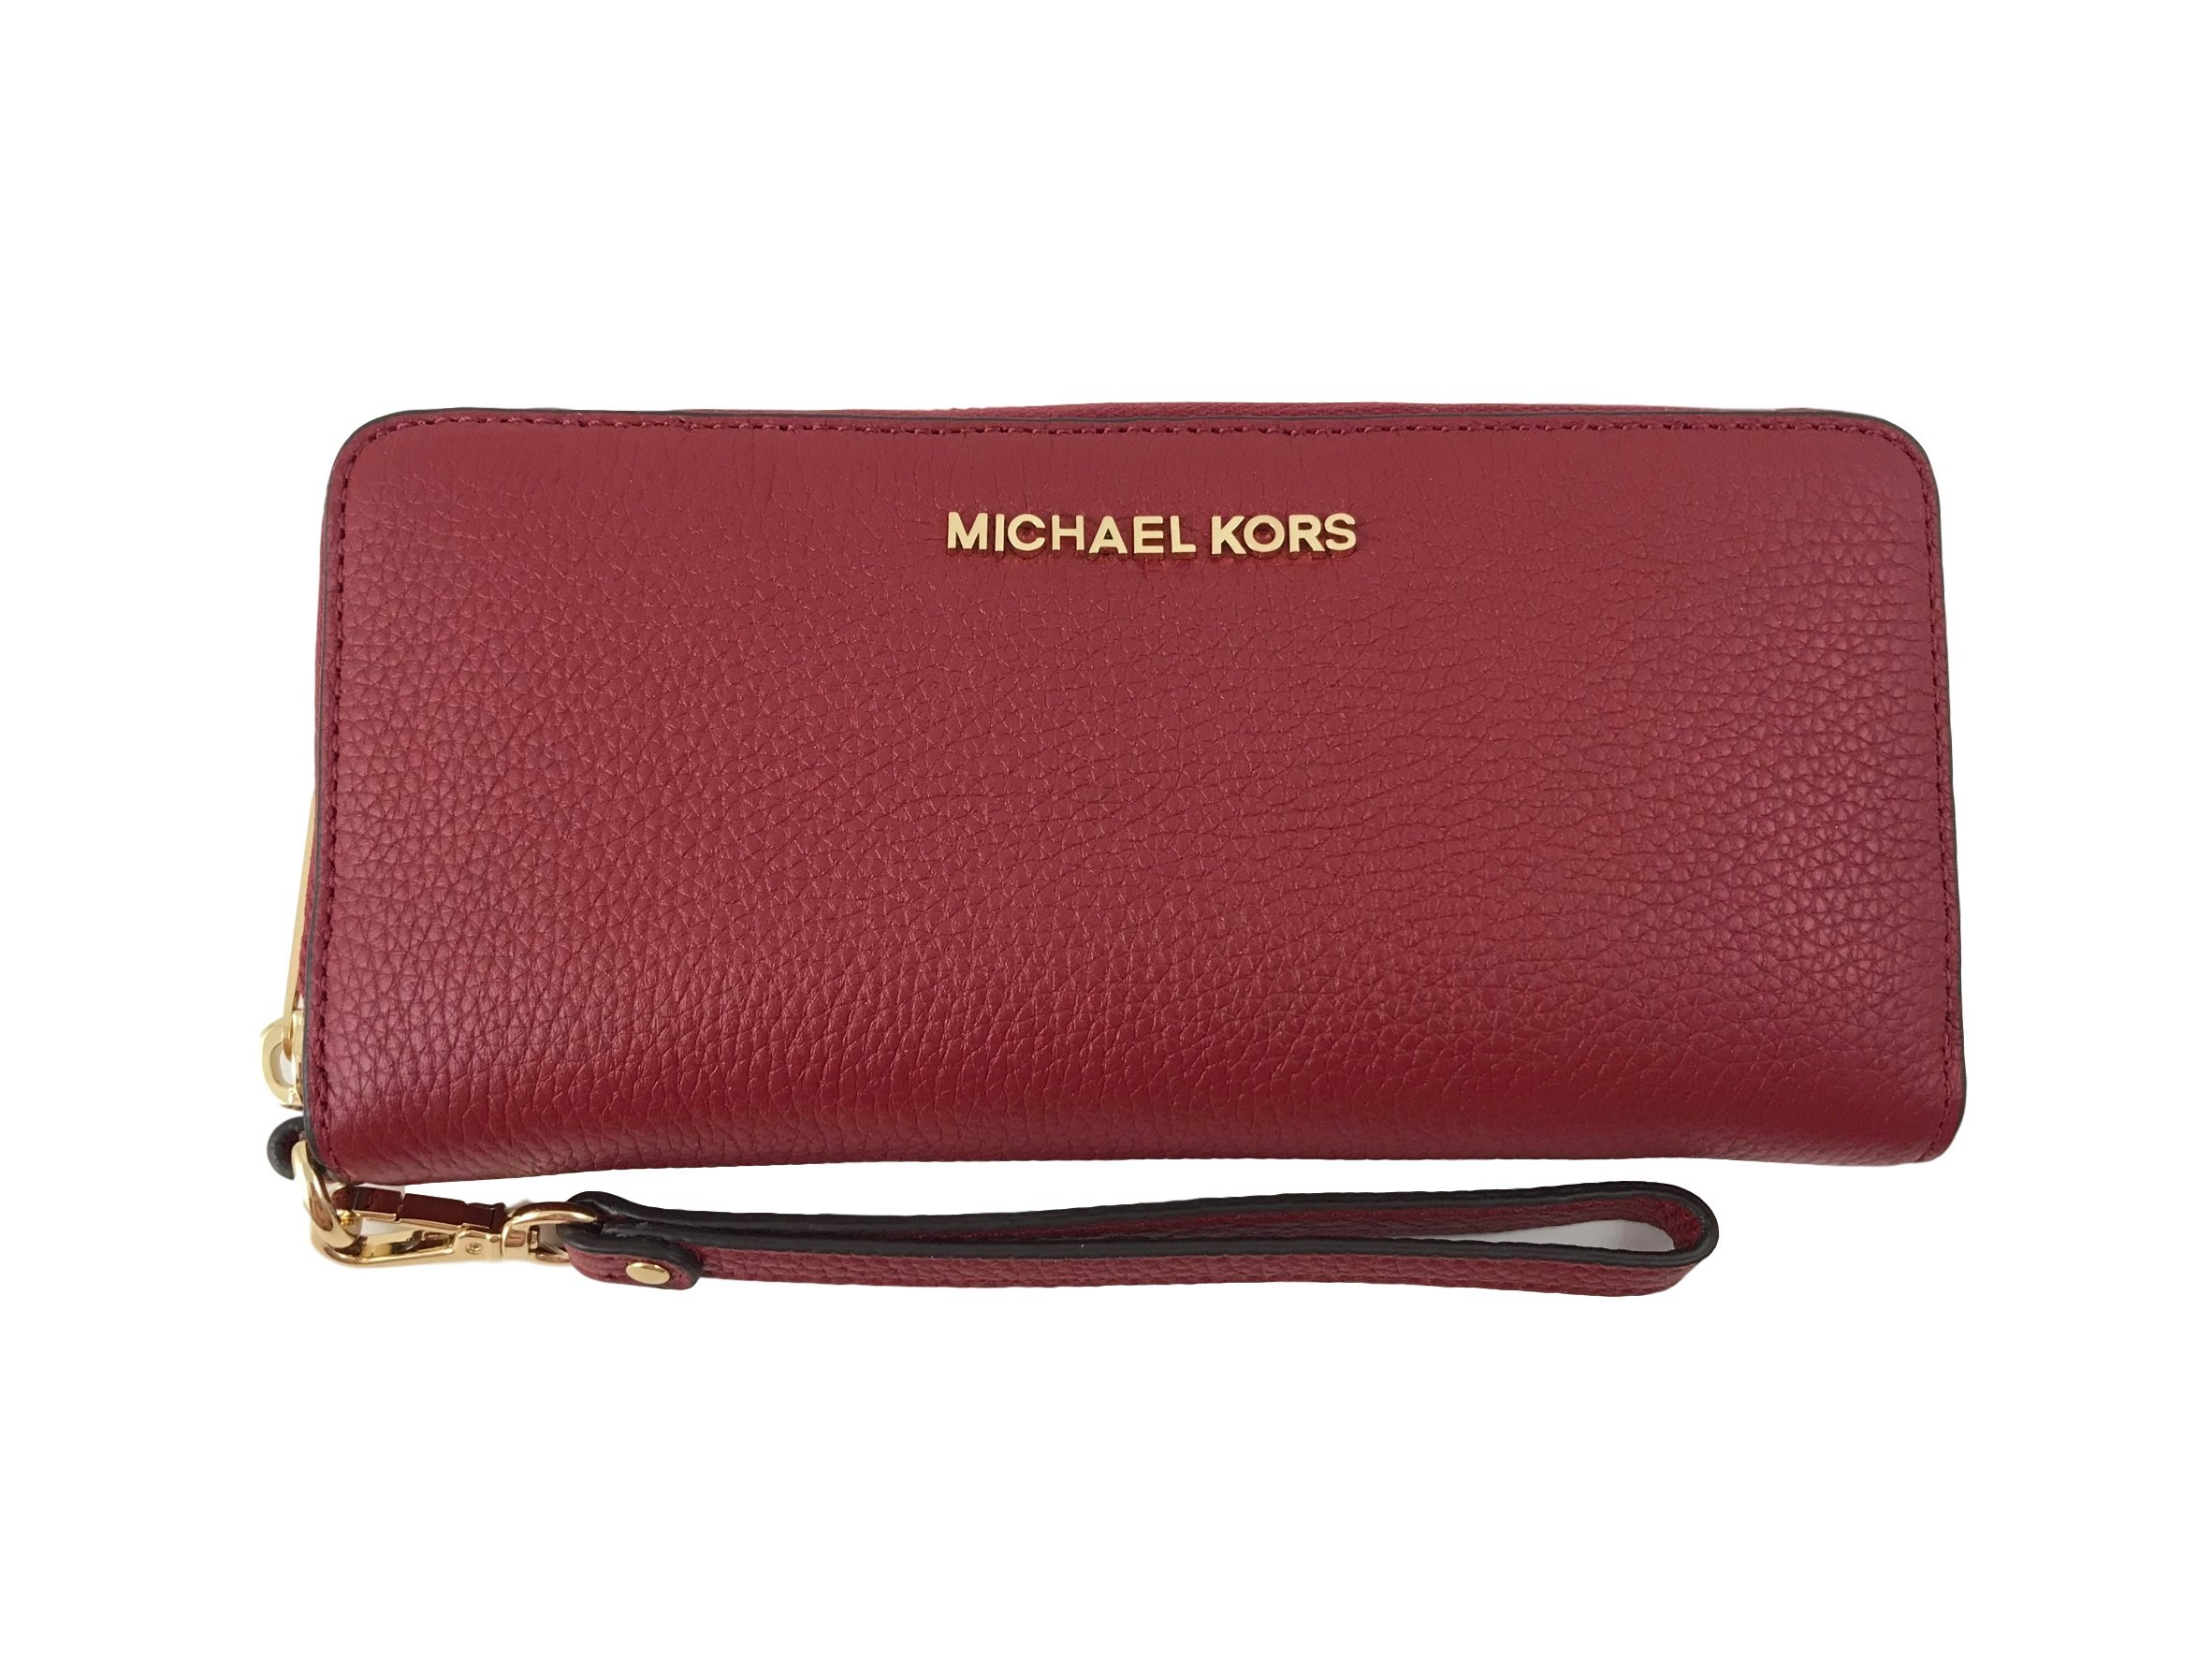 Michael Kors Jet Set Travel Continental Leather Wallet/Wristlet - Cherry by Michael Kors